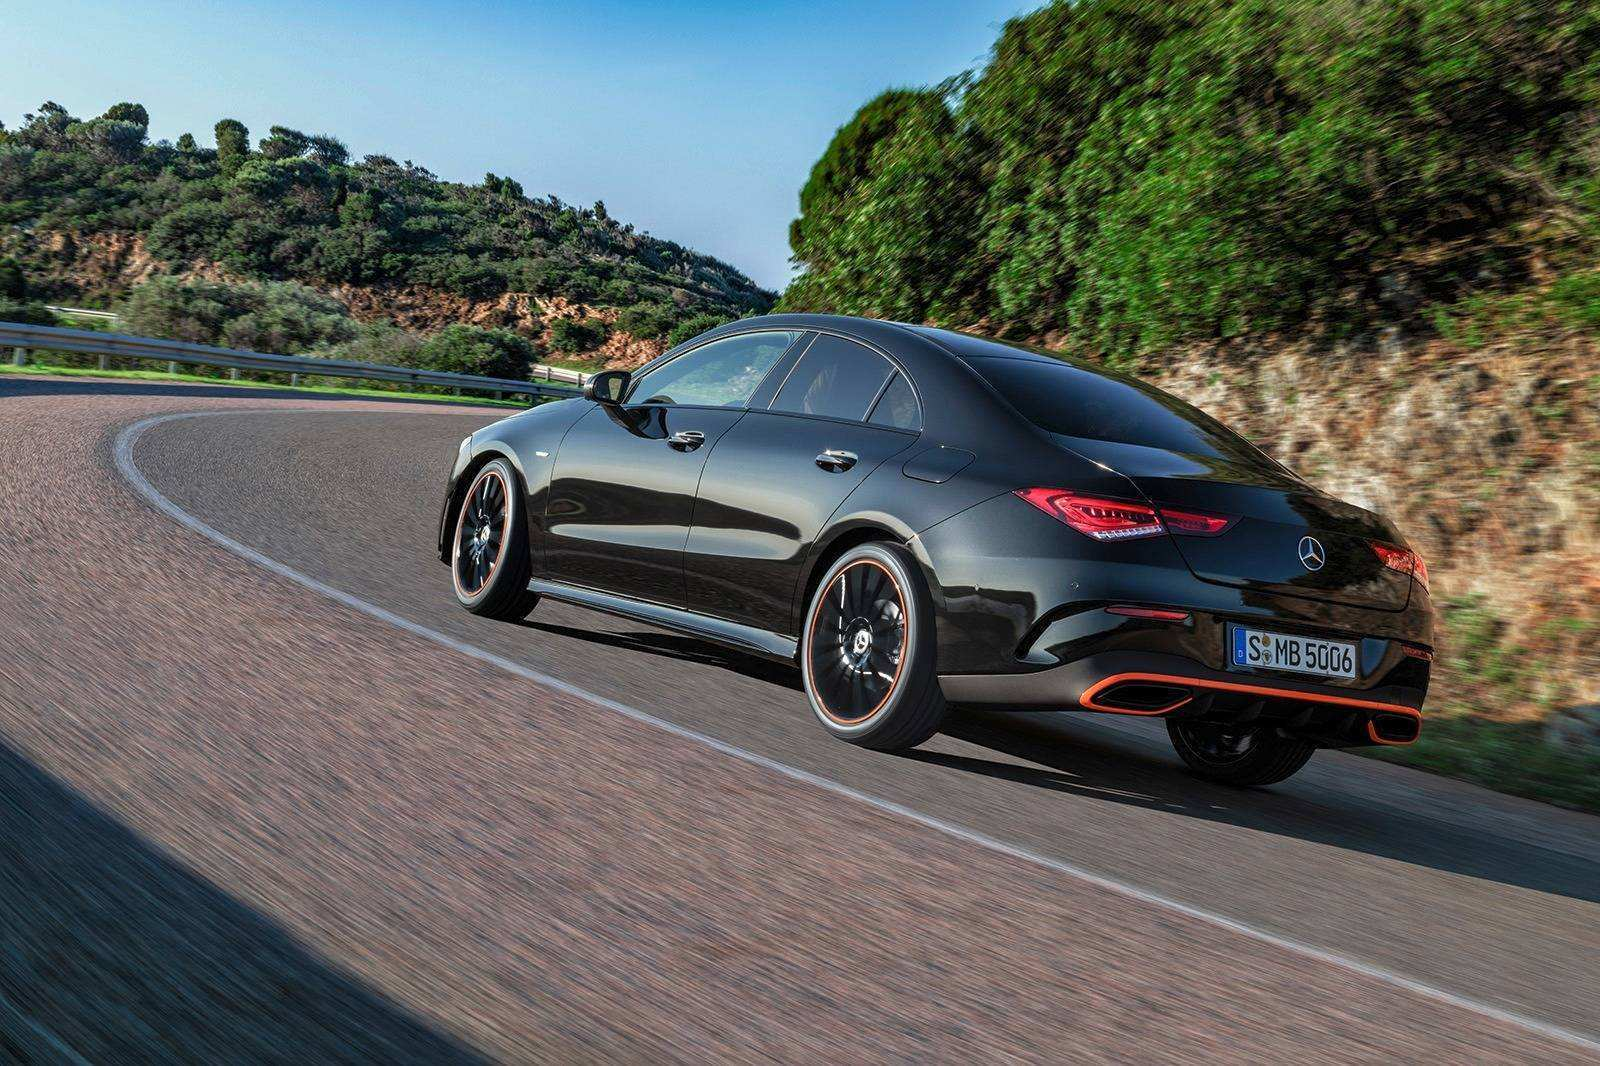 91 Great New Cla Mercedes 2020 Redesign and Concept by New Cla Mercedes 2020